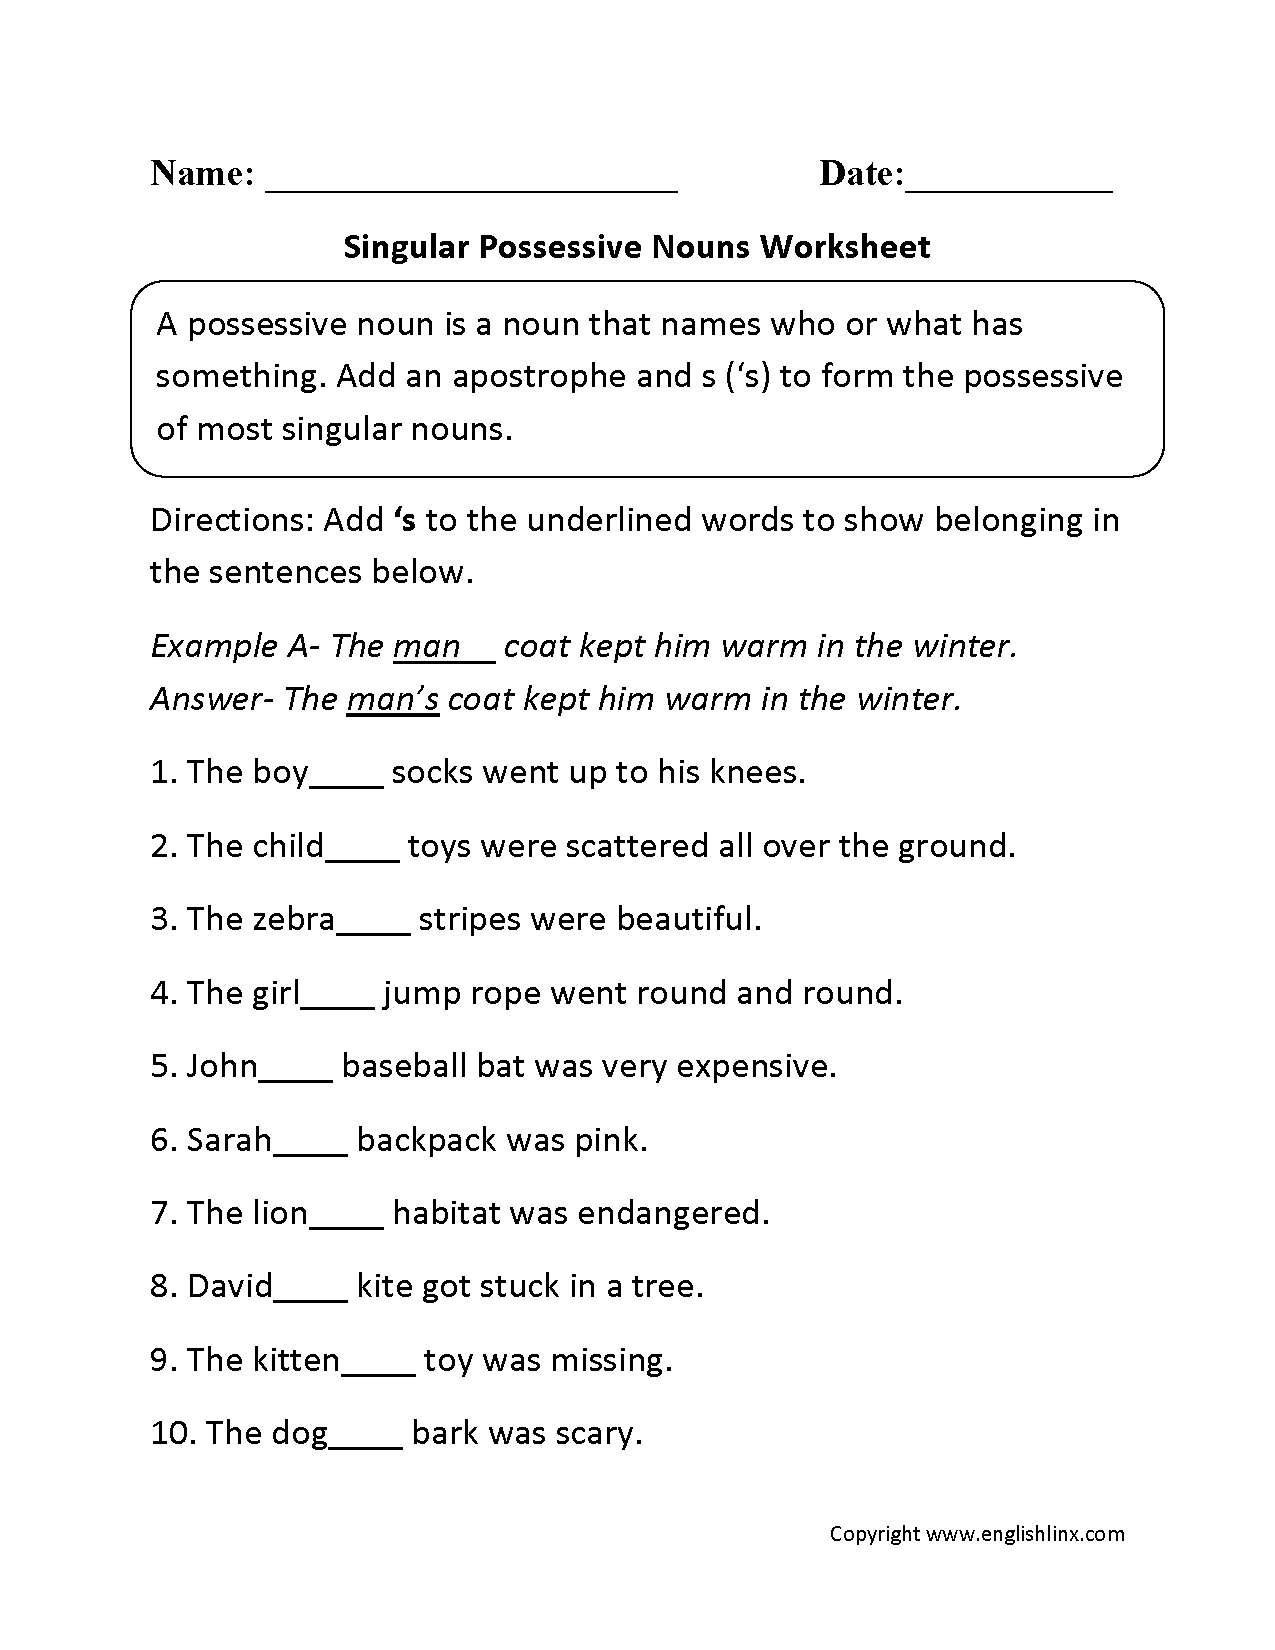 Singular Possessive Nouns Worksheets